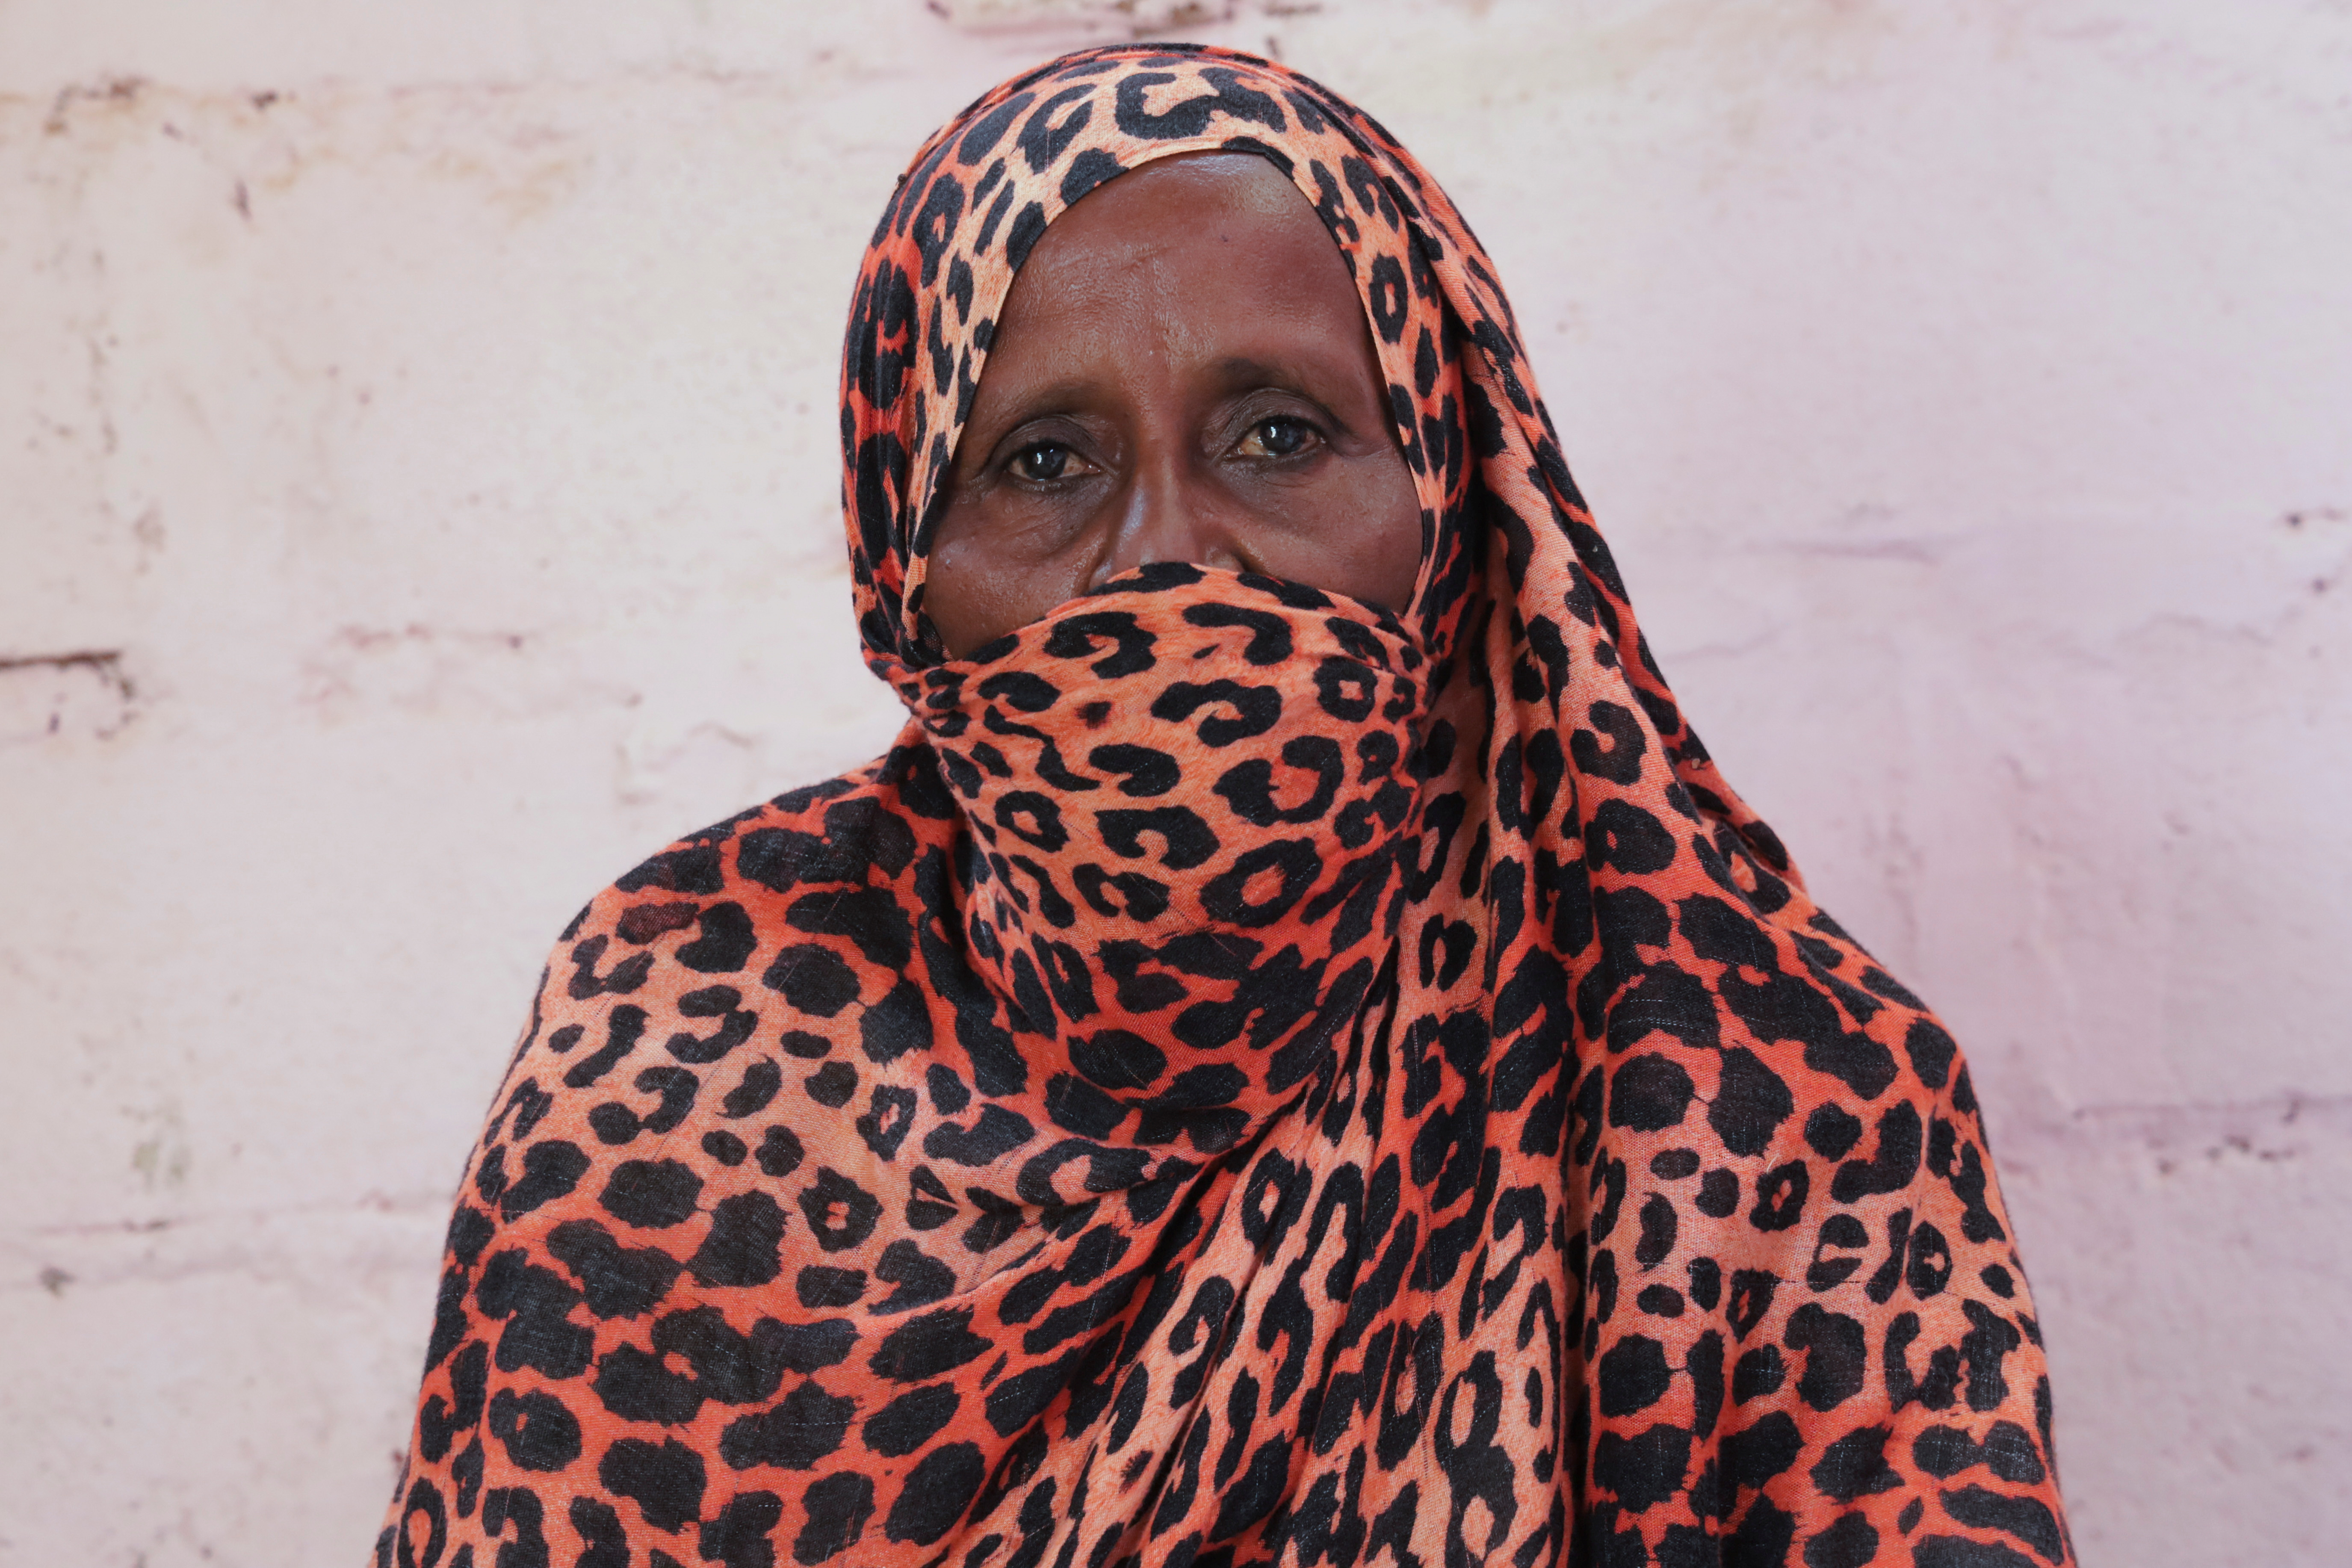 Arafa Mohammed, a Sudanese housewife who applied for Sudan's Thamarat Family Support Programme, poses for a picture in South Khartoum April 26, 2021. REUTERS/El-Tayeb Siddig